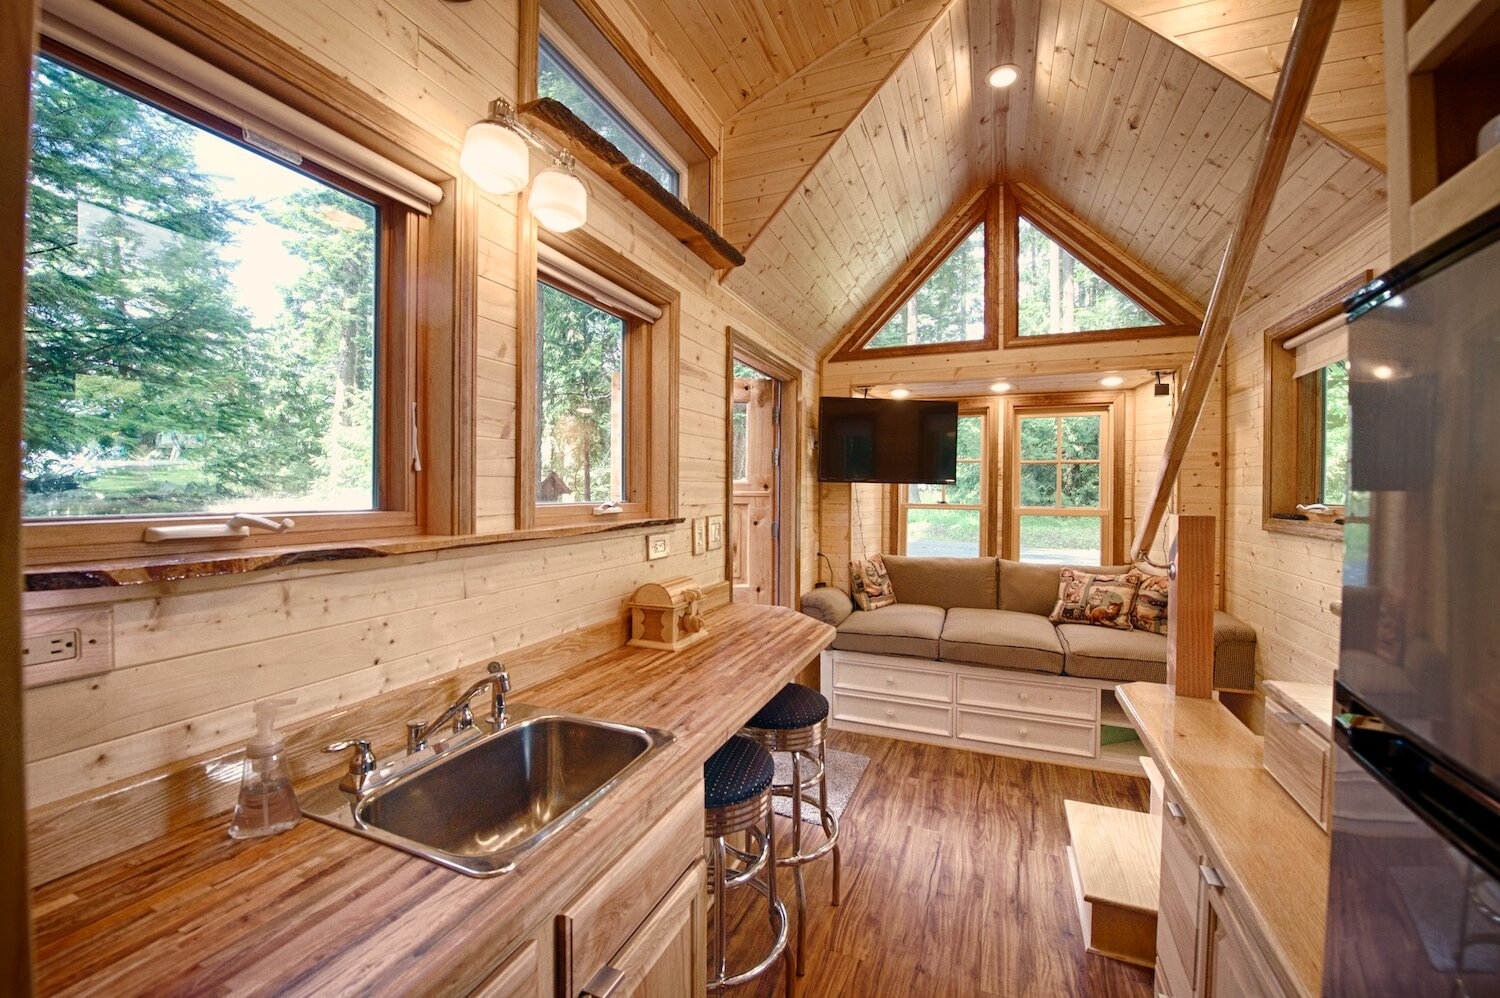 A Tiny House With Sauna